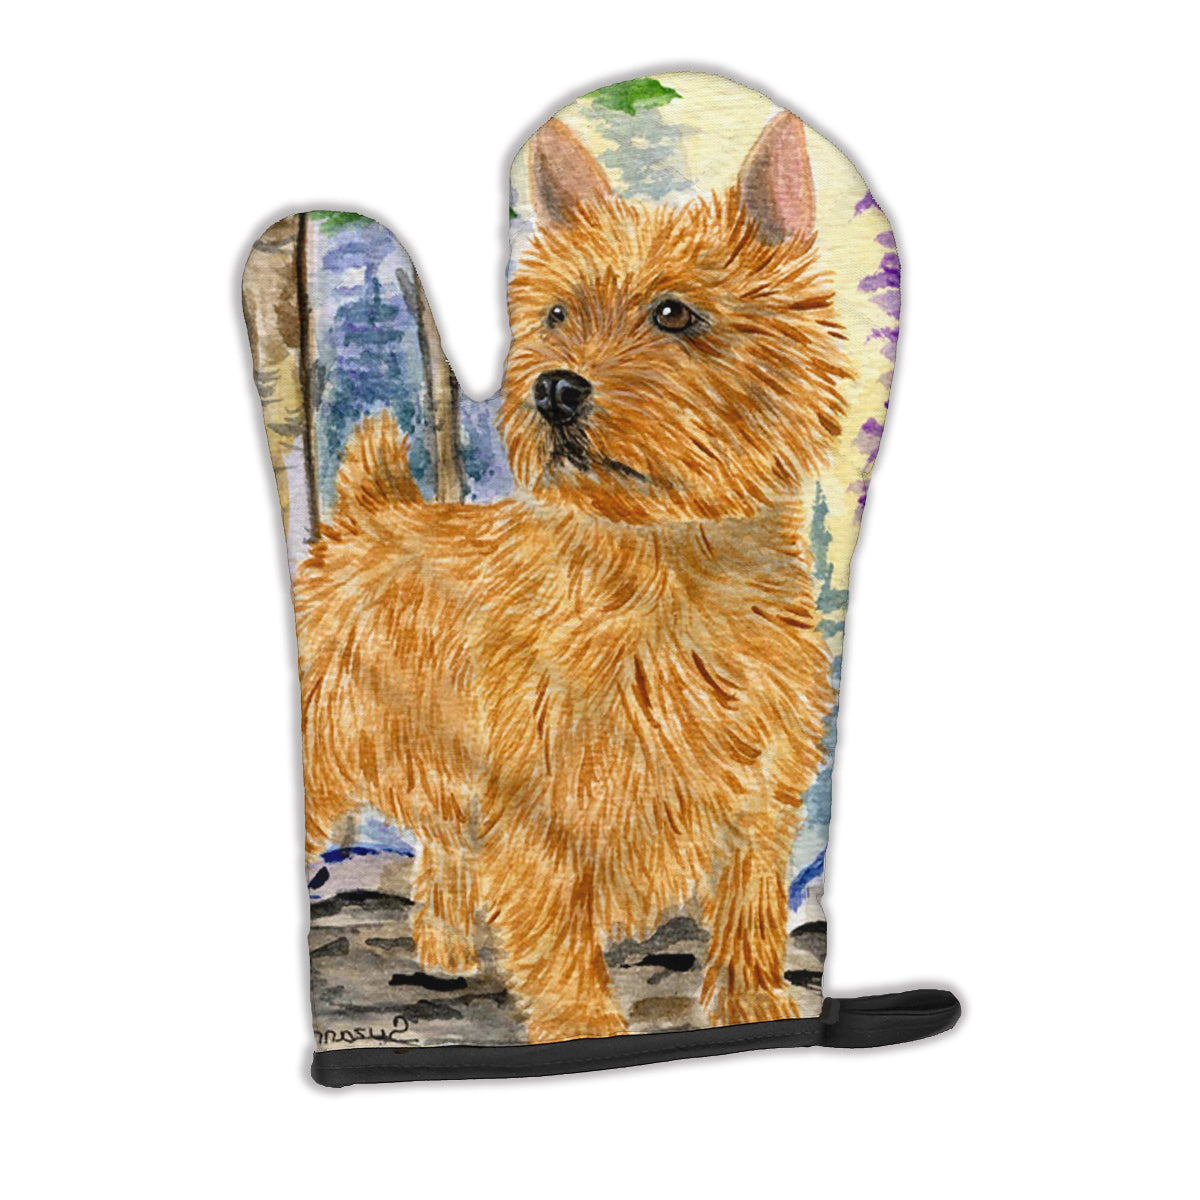 Norwich Terrier Oven Mitt SS8011OVMT by Caroline's Treasures